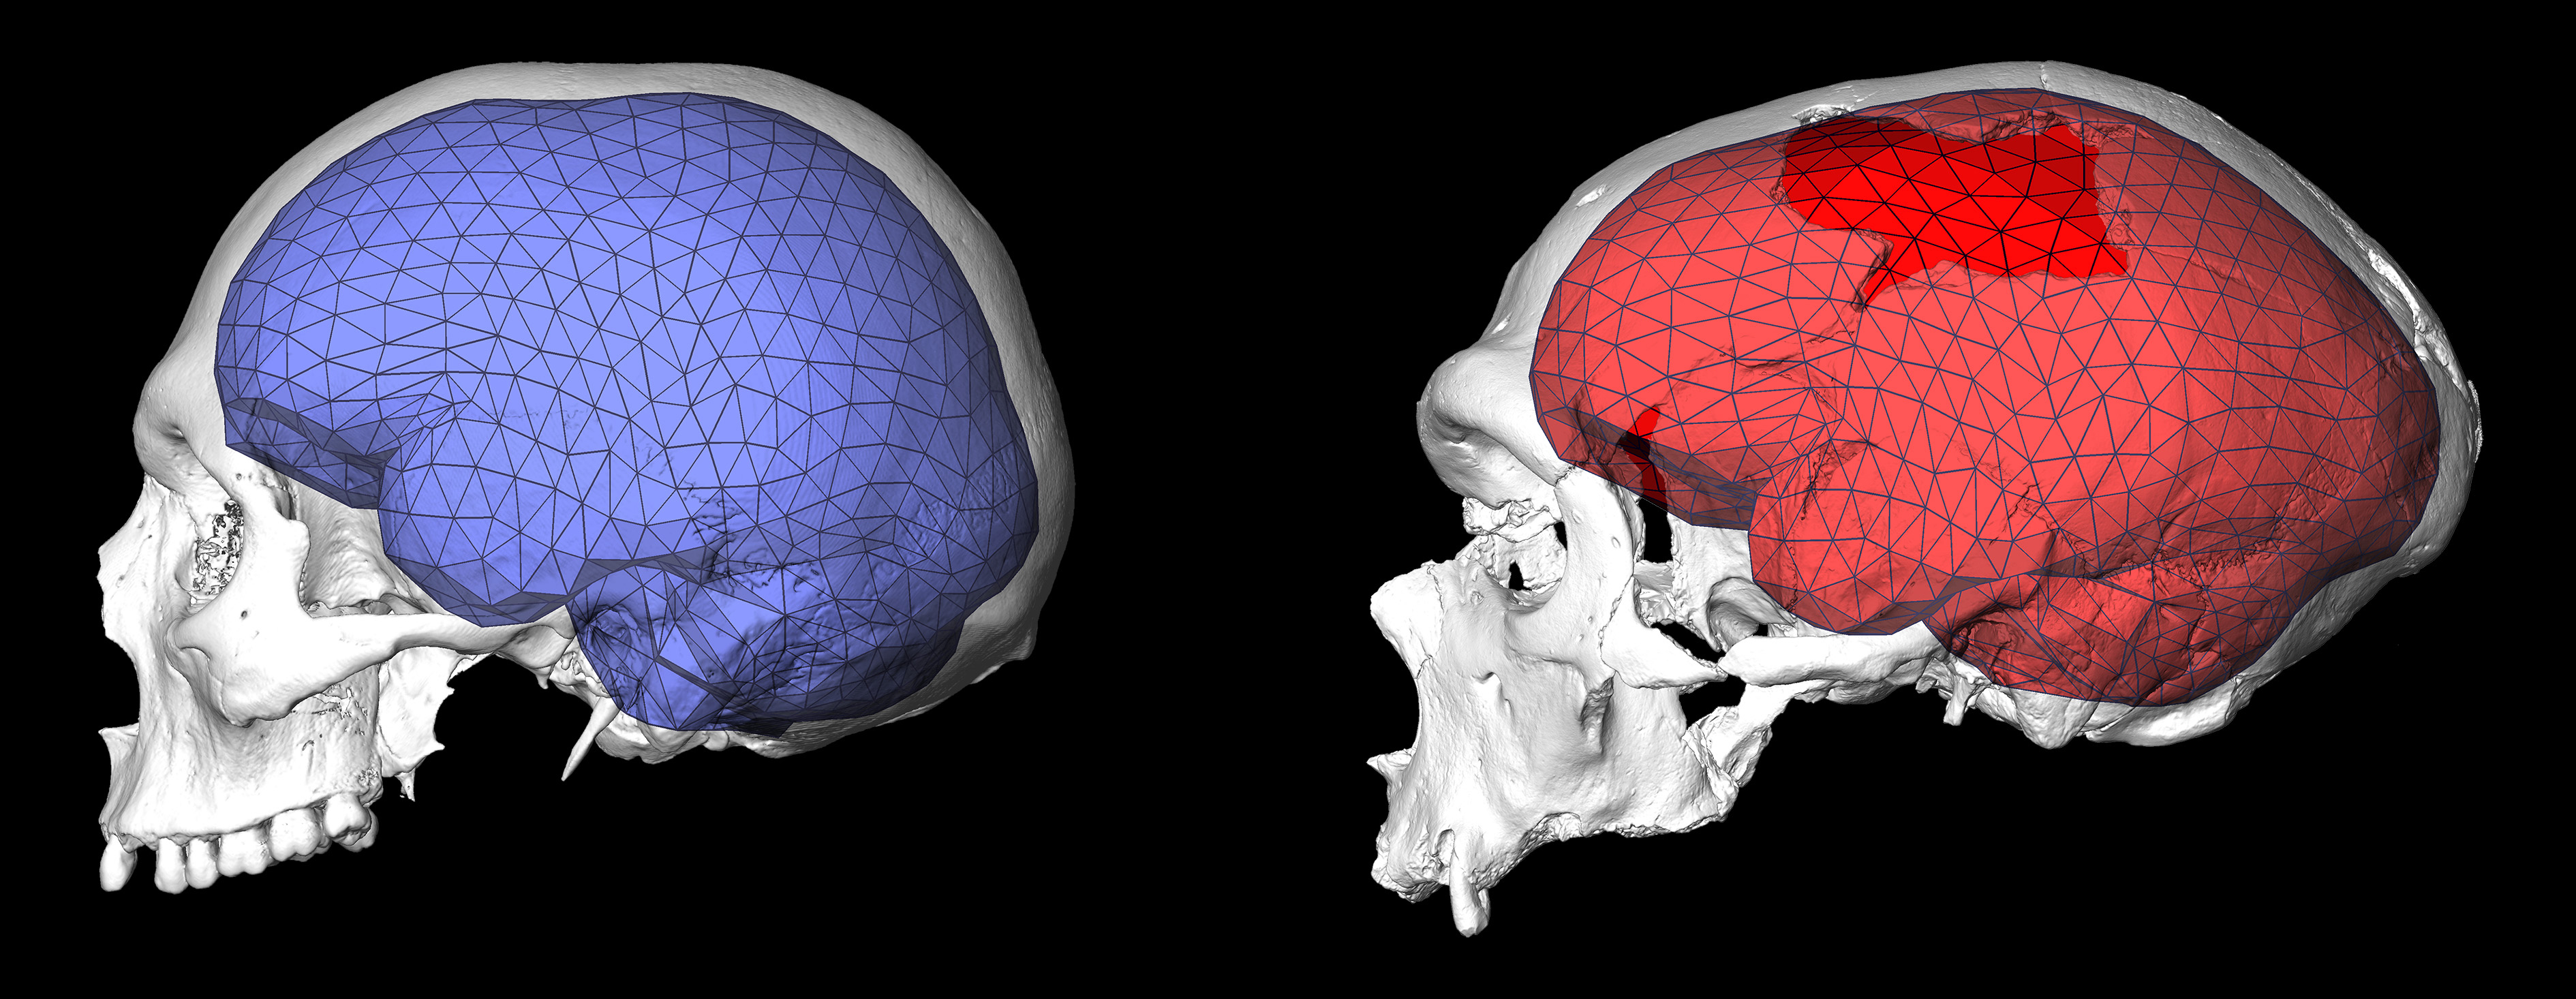 on-the-left-the-globular-endocranial-shape-of-a-modern-human-brian-and-on-the-right-the-neandertha